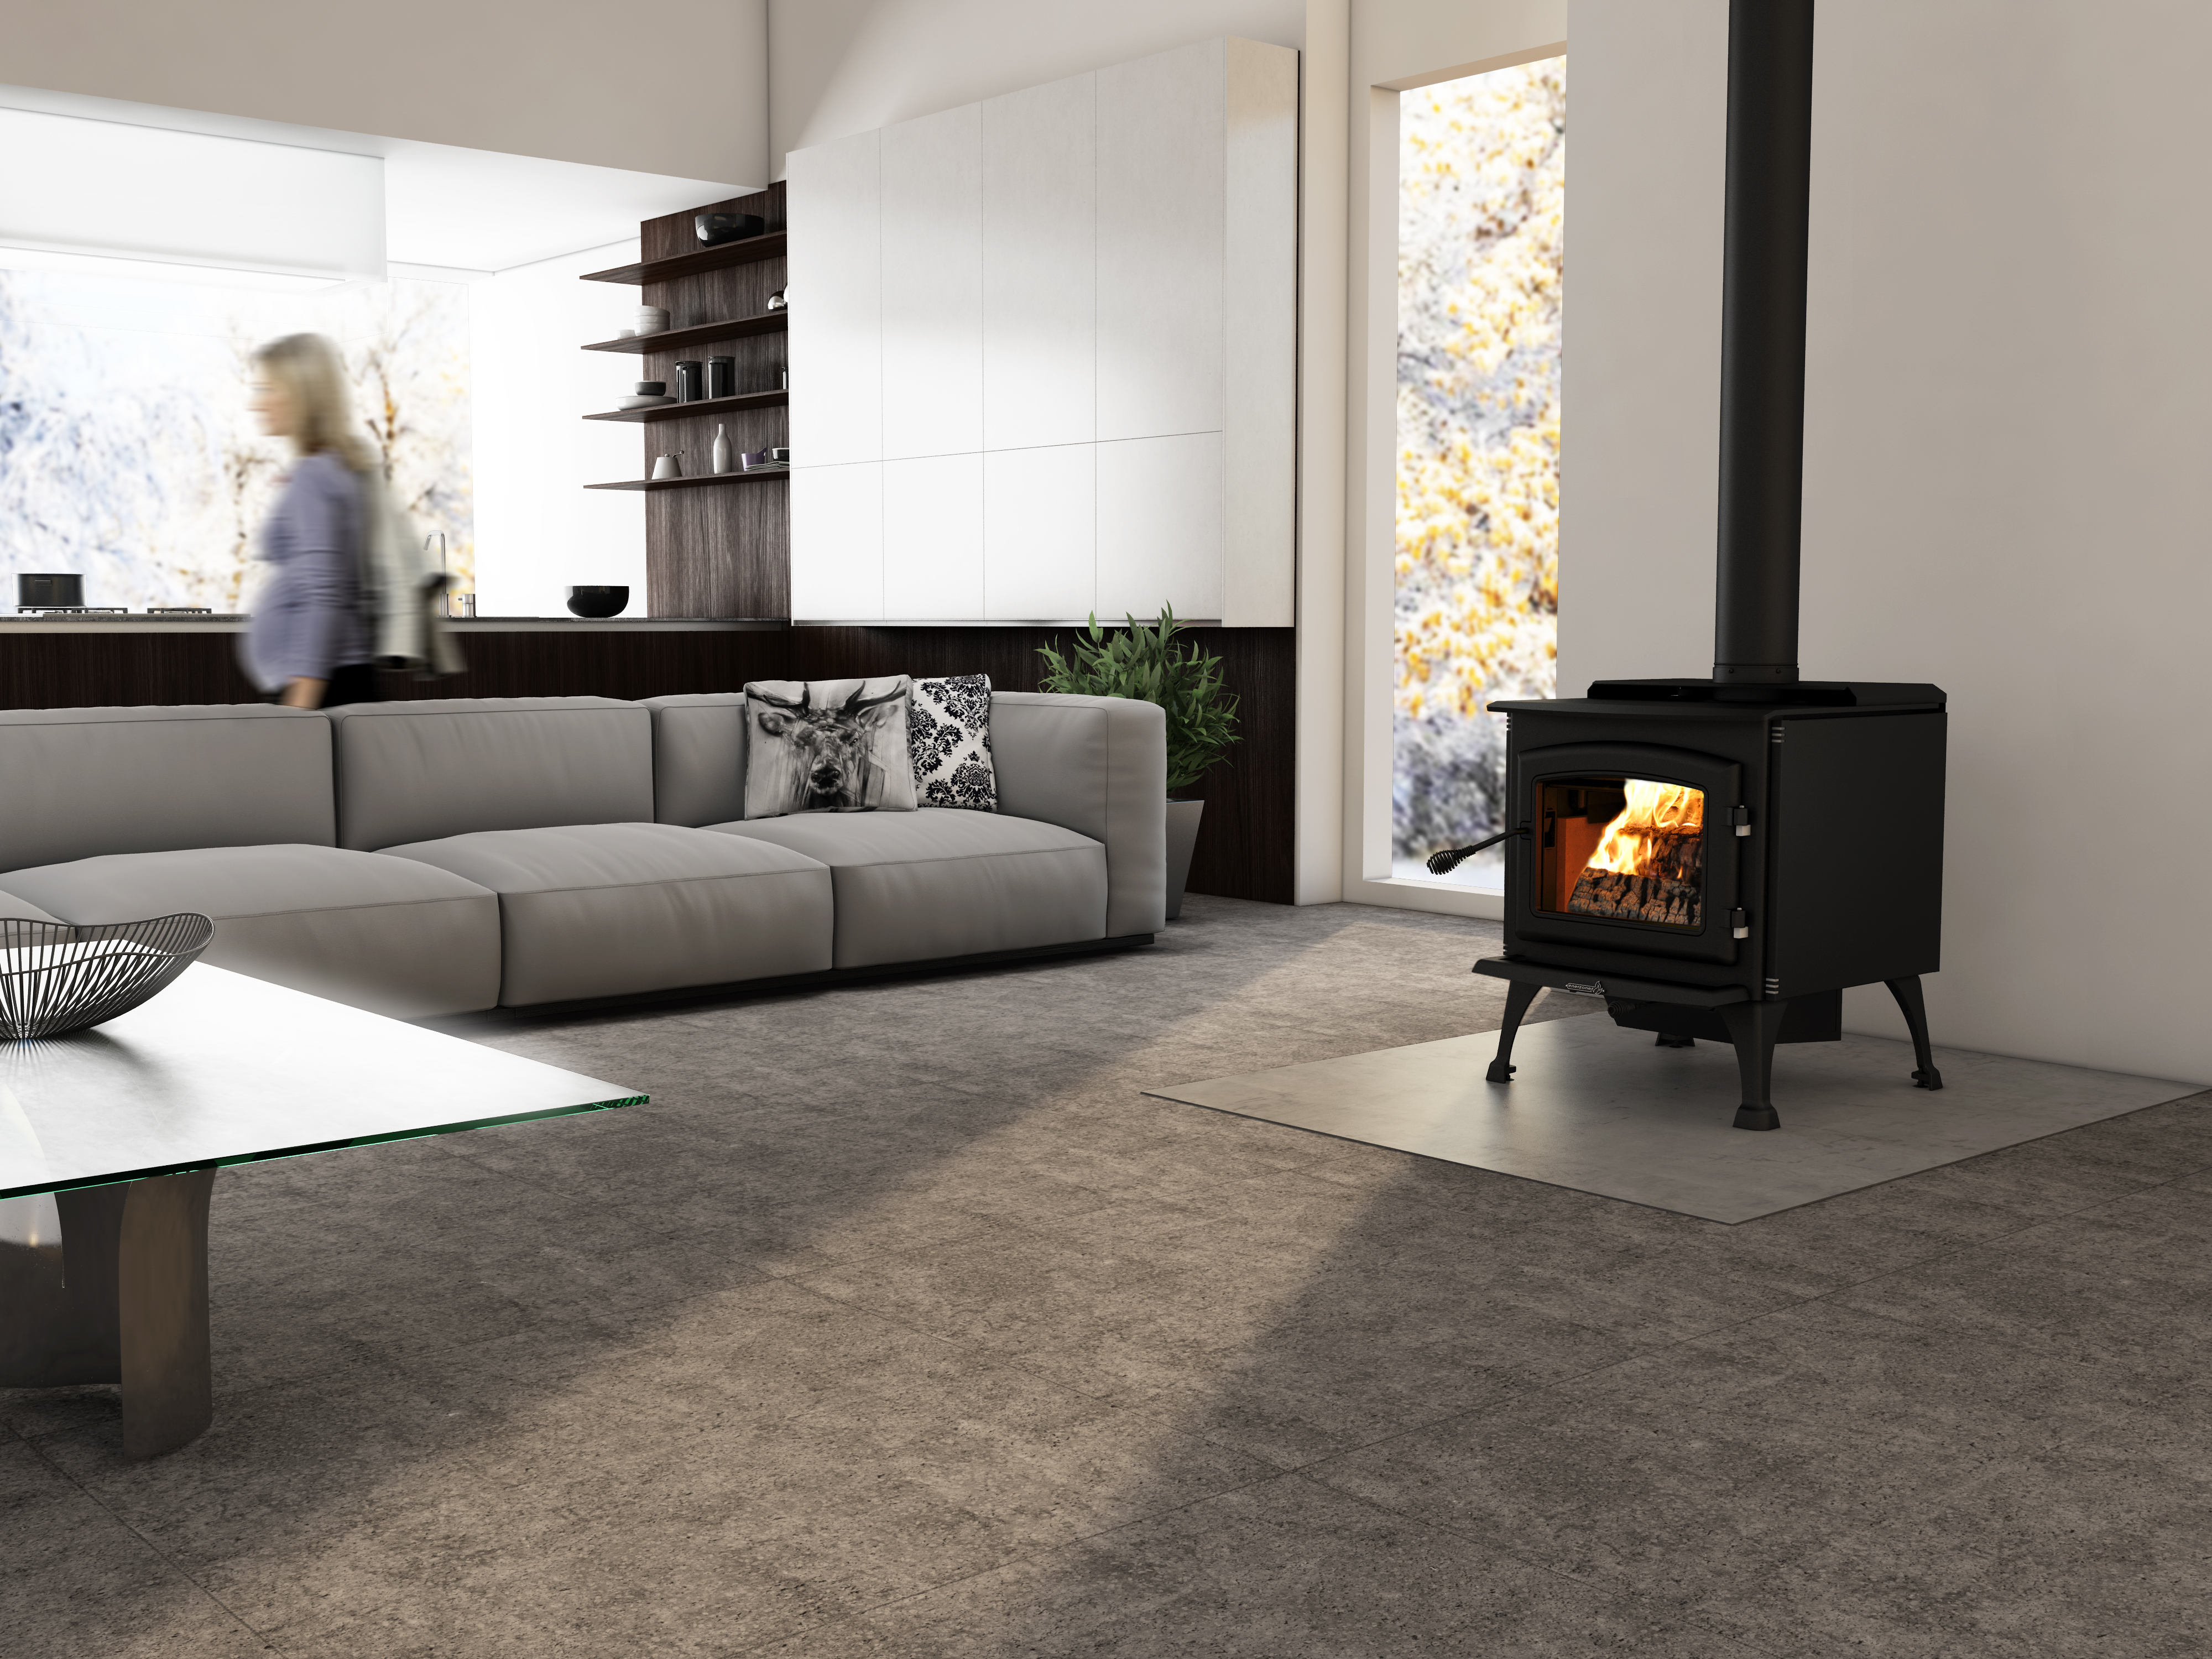 Difference Poele A Bois Et Insert solution 2.9 | wood stoves | enerzone